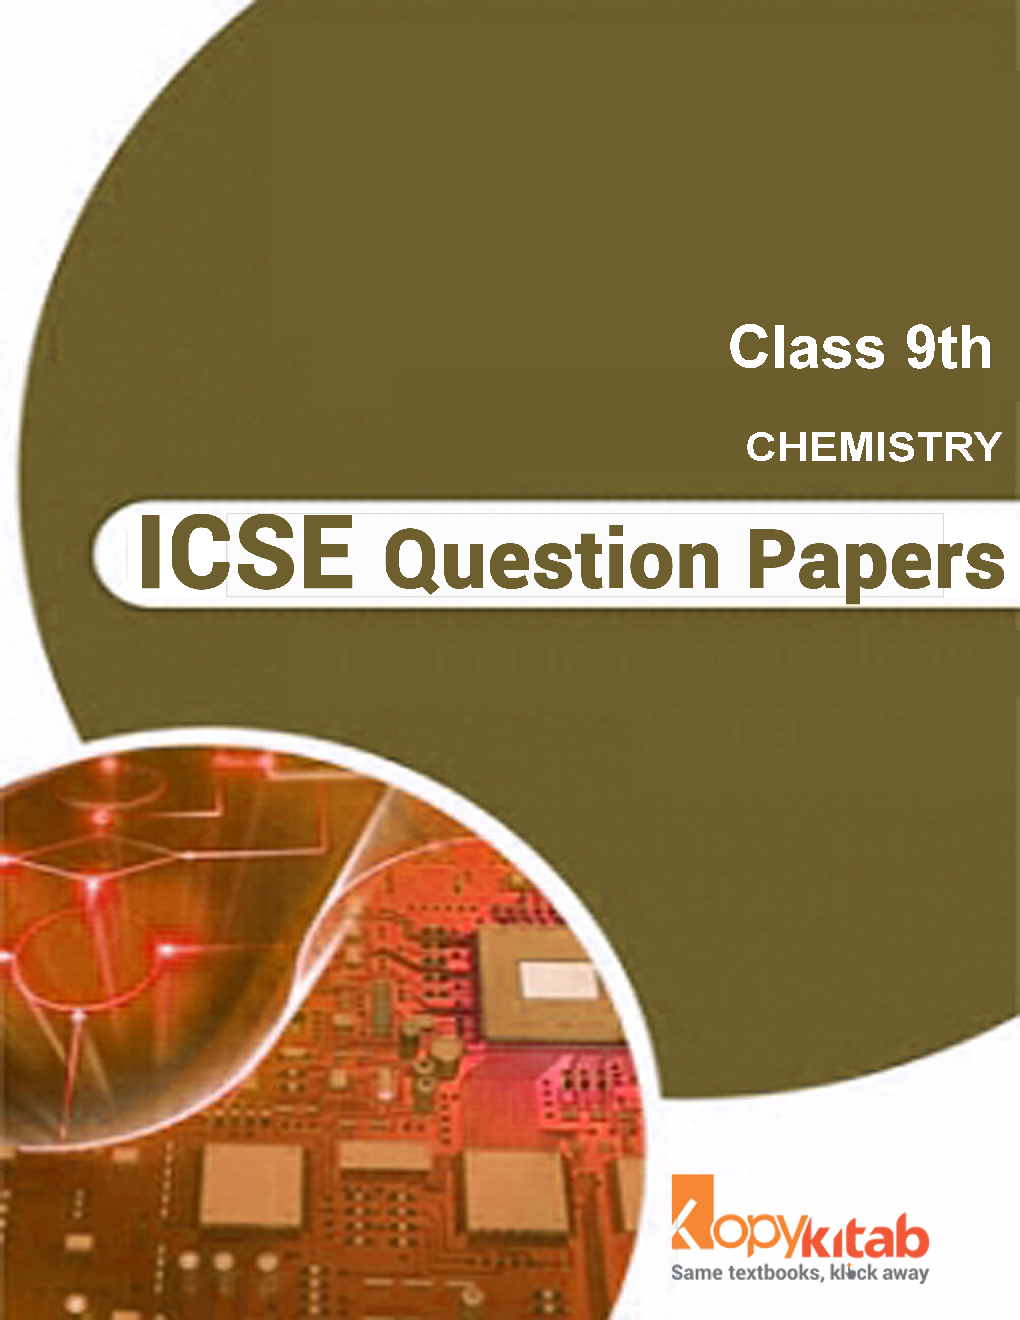 ICSE Question Papers For Class 9 Chemistry - Page 1